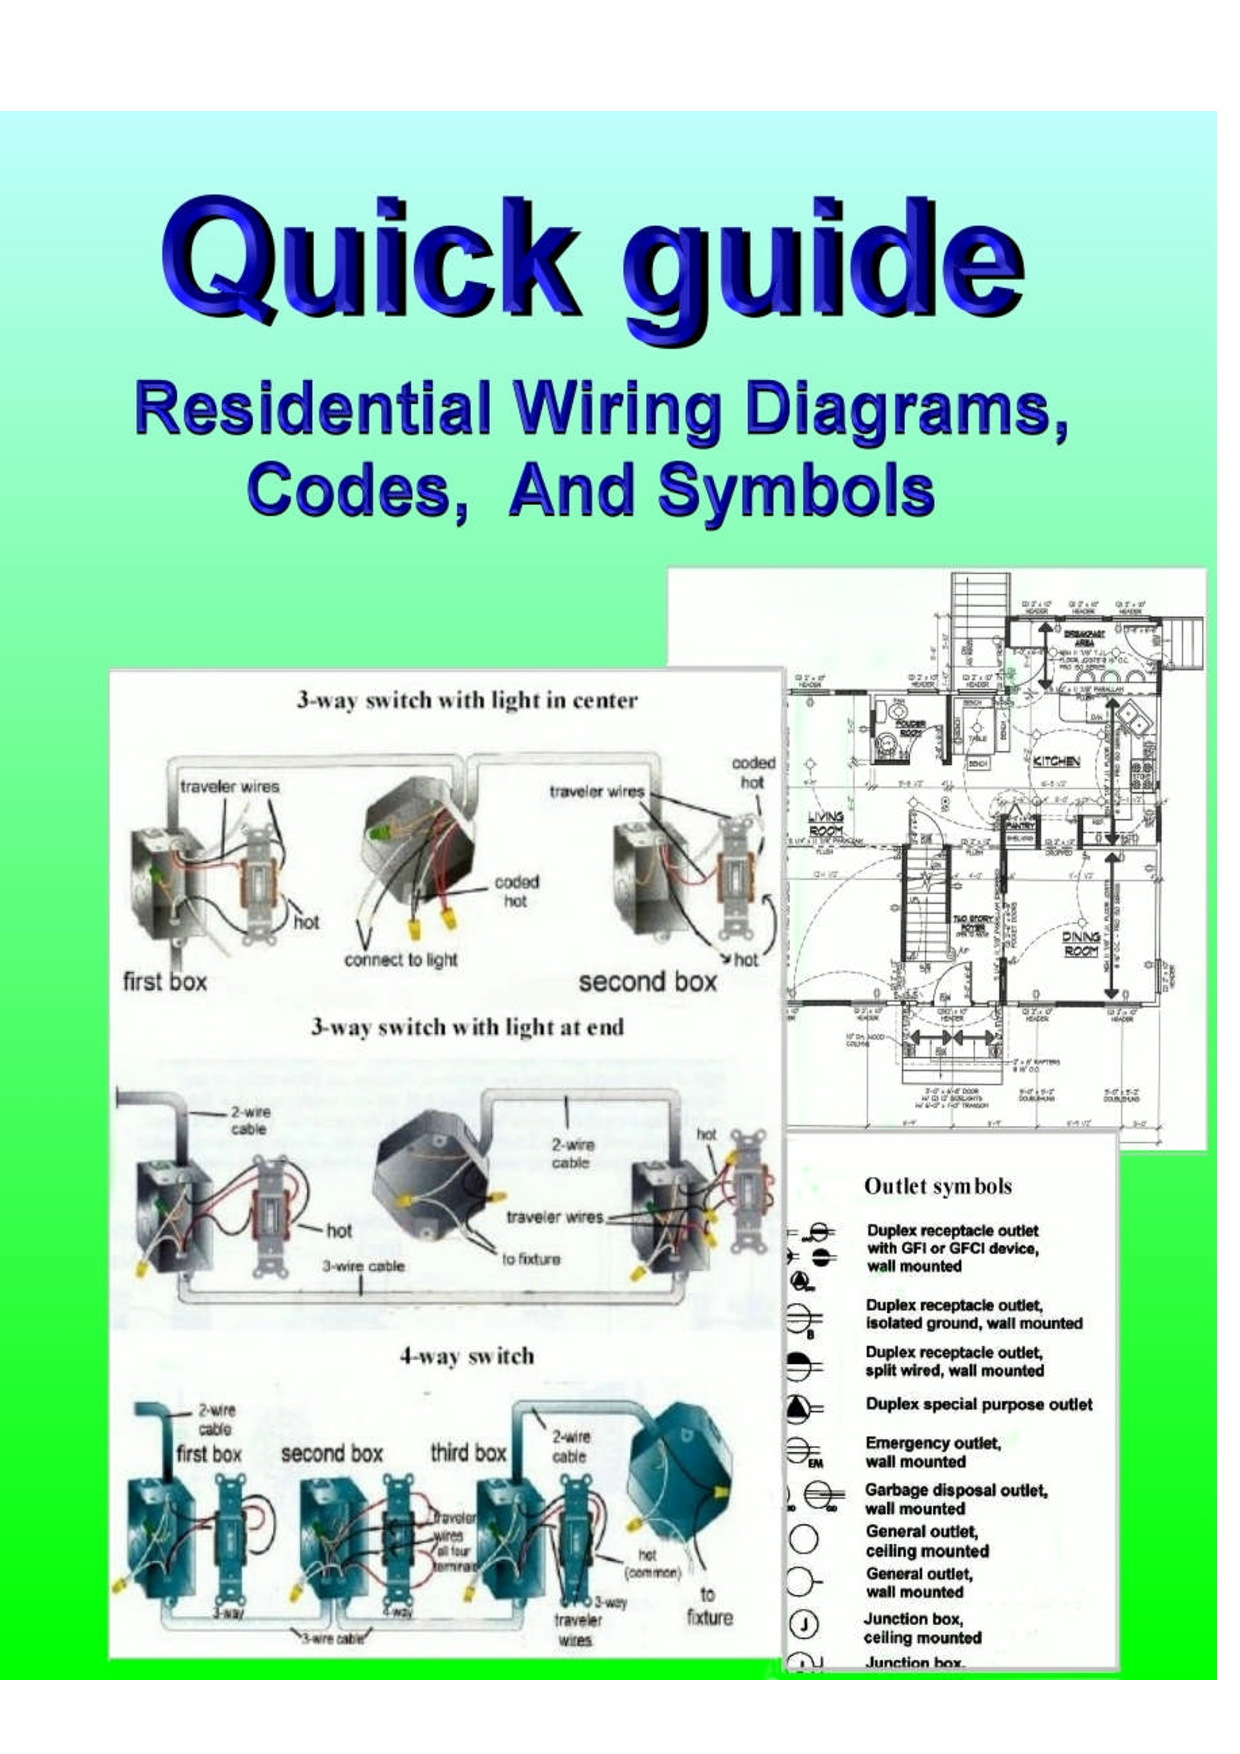 Home electrical wiring diagramspdf download legal documents 39 home electrical wiring diagramspdf download legal documents 39 pages with many diagrams and illustrations greentooth Gallery